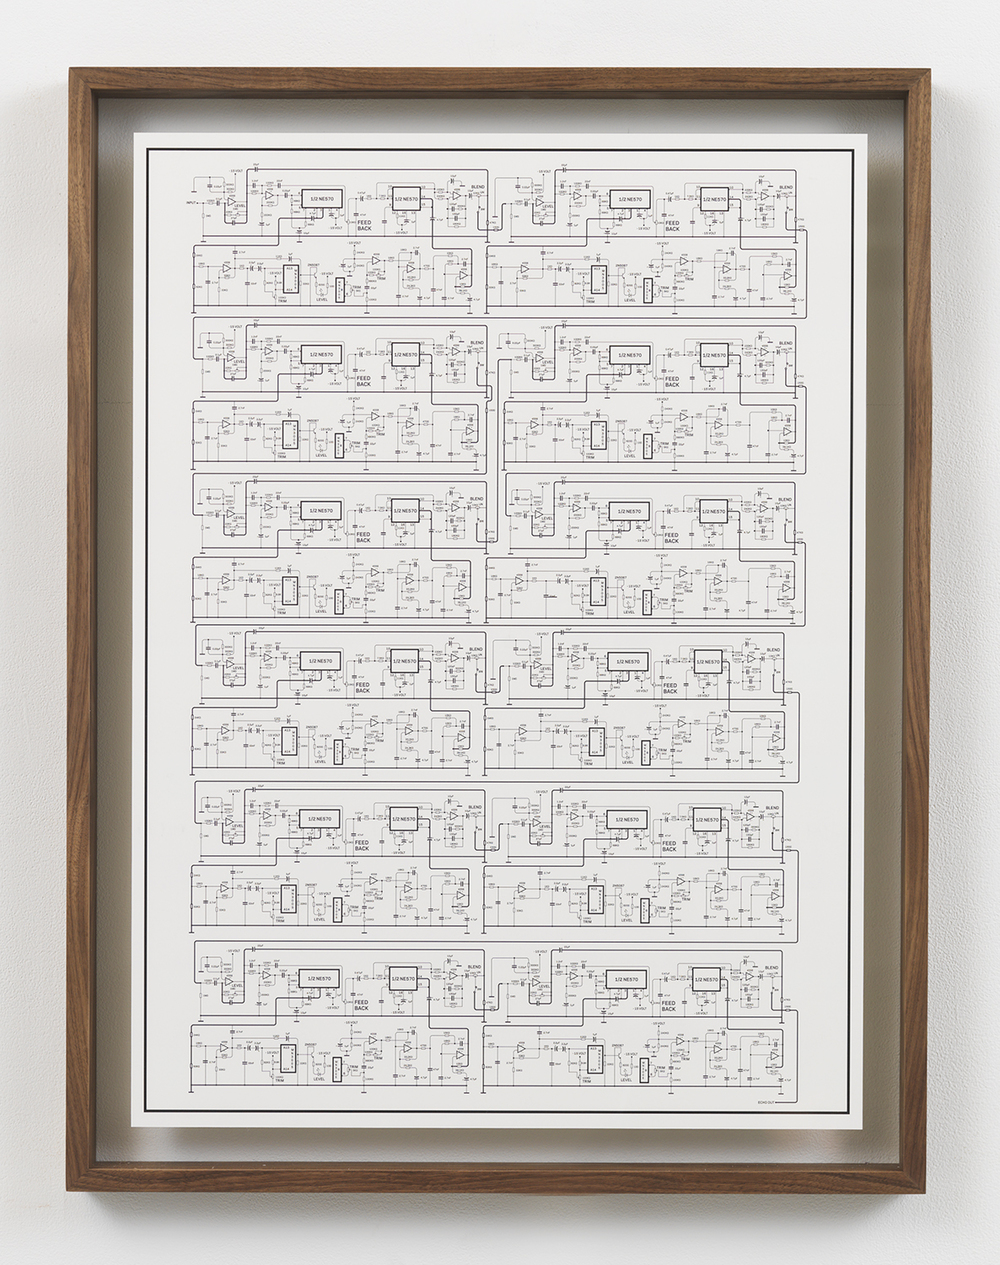 Deluxe Memory Man Cascade, 2015 Inkjet print in artist frame 33.75 x 25.75 inches